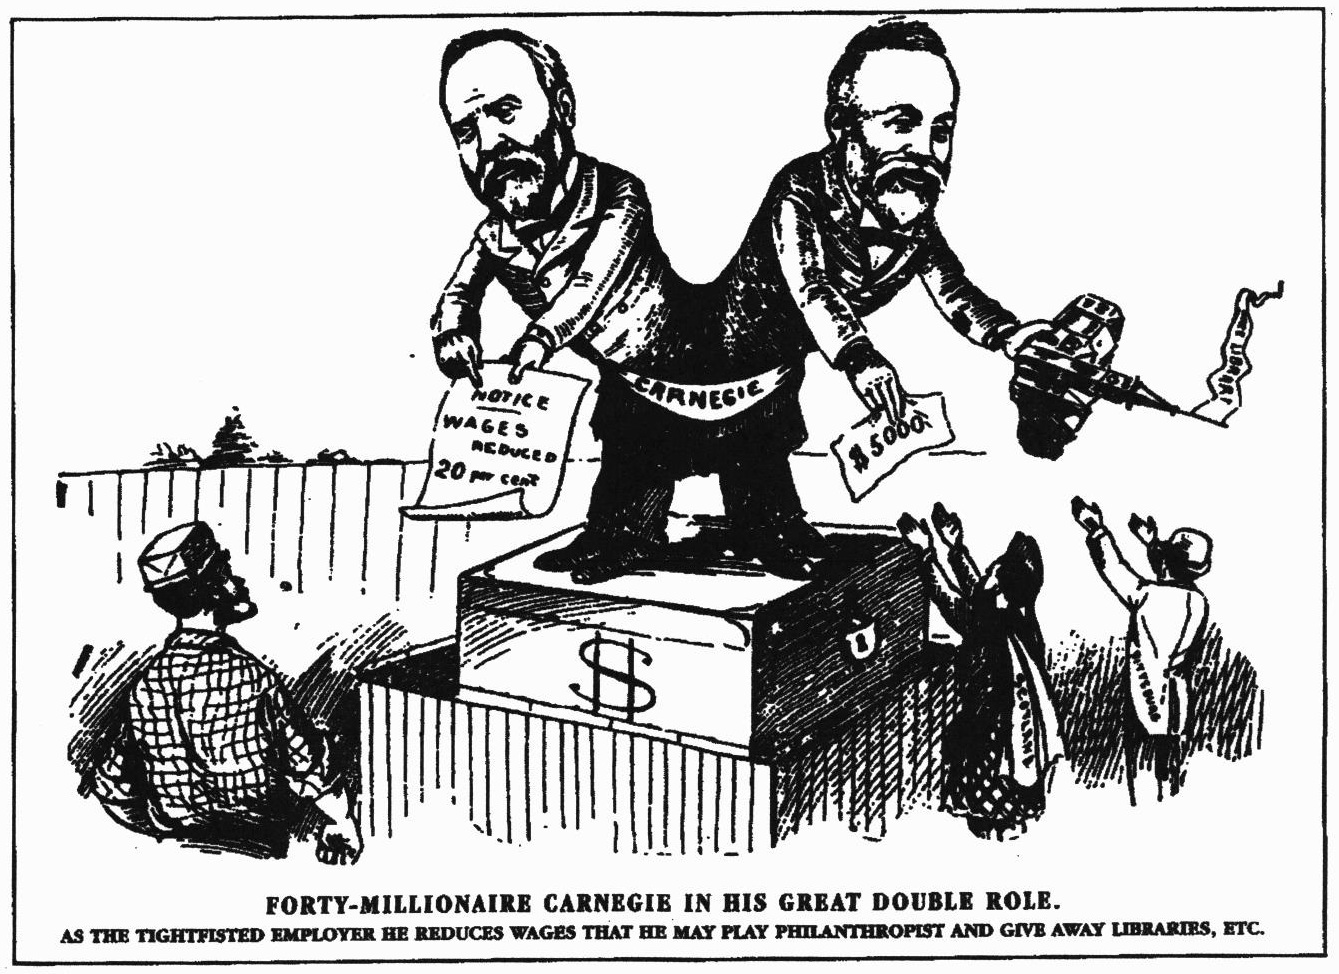 A cartoon of Andrew Carnegie as a two-bodied serpent-man, one half taking wages from a worker and the other giving donations to charity